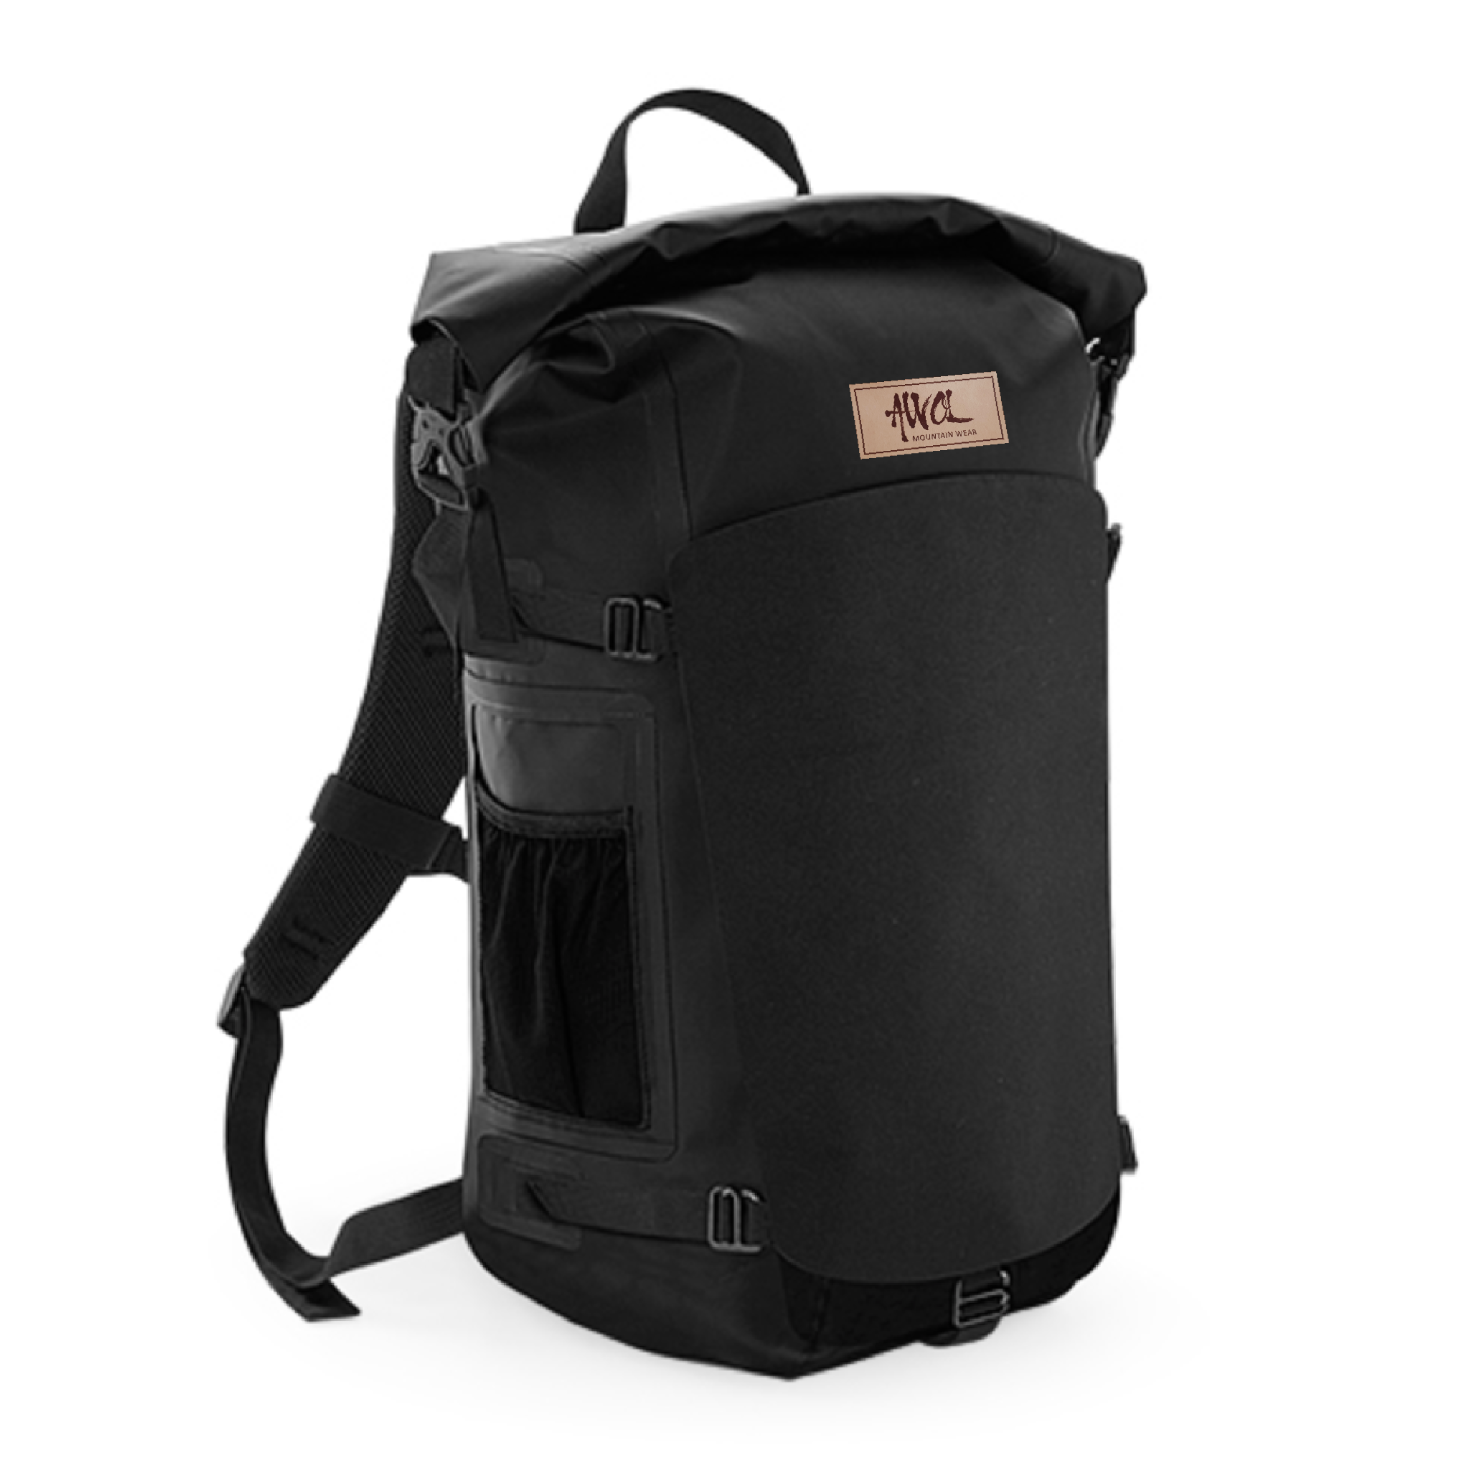 Peak Waterproof Backpack - The Peak Waterproof Backpack is for mountain climbs, food stashes, adventure essentials and pretty much anything else you need for your lifestyle.We will offer the incentive that once you are finished with the backpack, send it back to us where we will recycle it into new products, gaining the most out of the material whilst not adding further to landfills. In return, we will provide a discount off of a new product as a thank you from us to you.This incentive is one that you will be seeing launched across a number of our products, in a drive to limit the amount of material which is added to landfill sites across the UK every week.